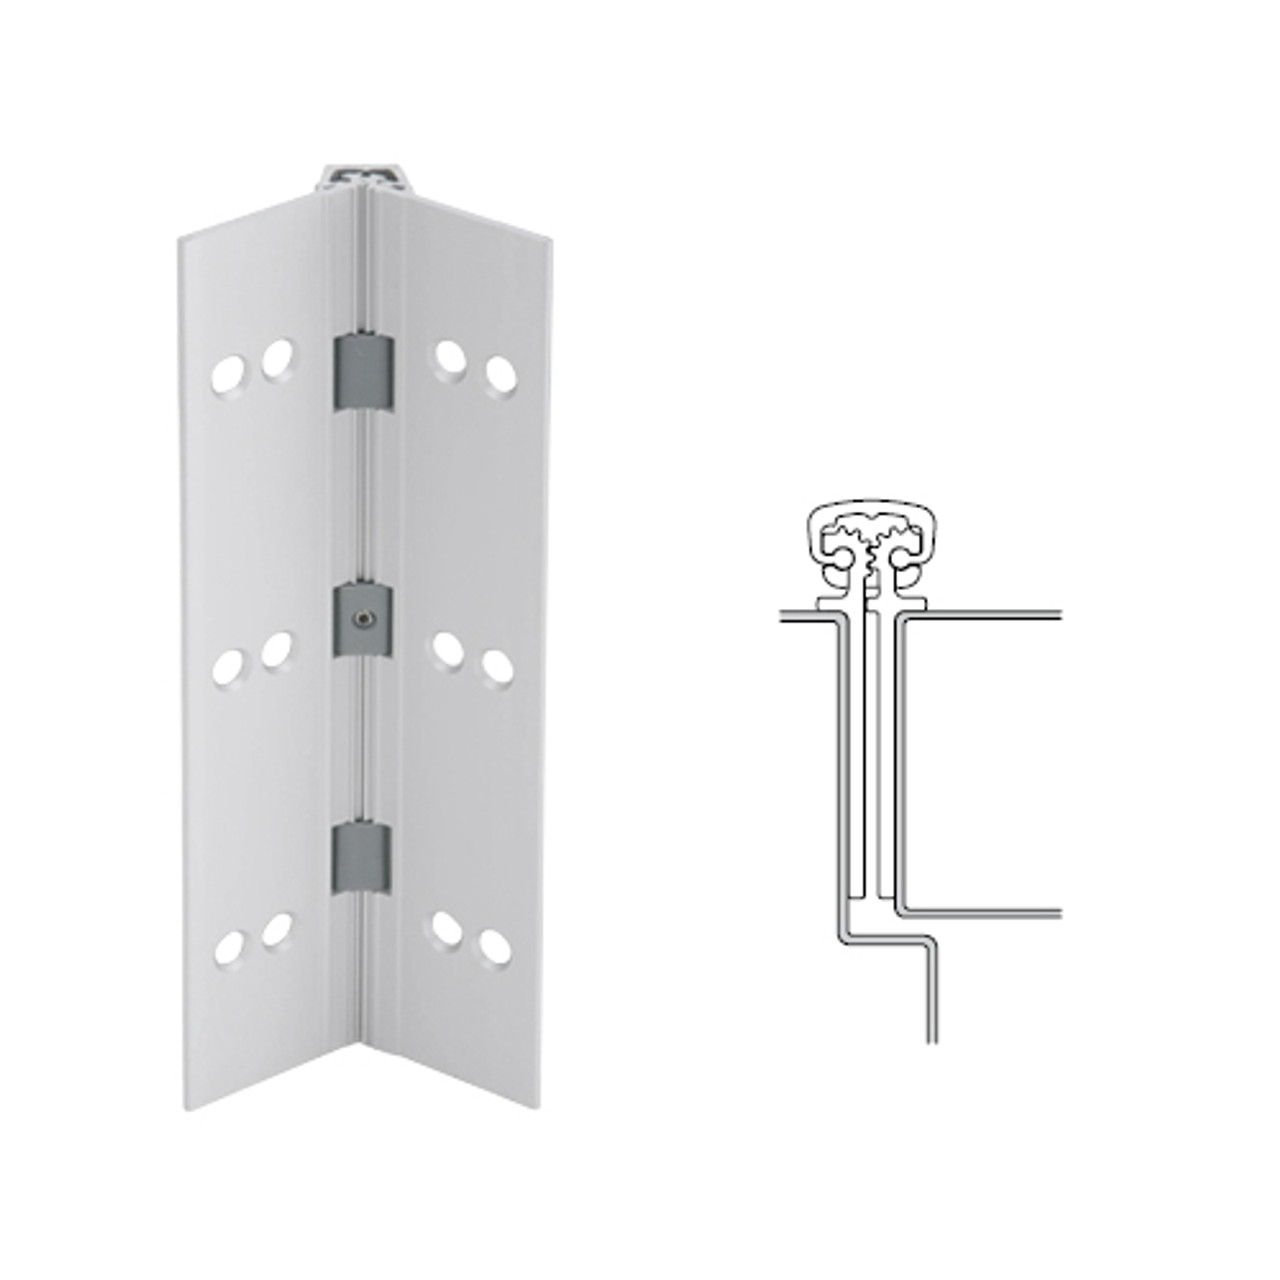 027XY-US28-85-SECHM IVES Full Mortise Continuous Geared Hinges with Security Screws - Hex Pin Drive in Satin Aluminum